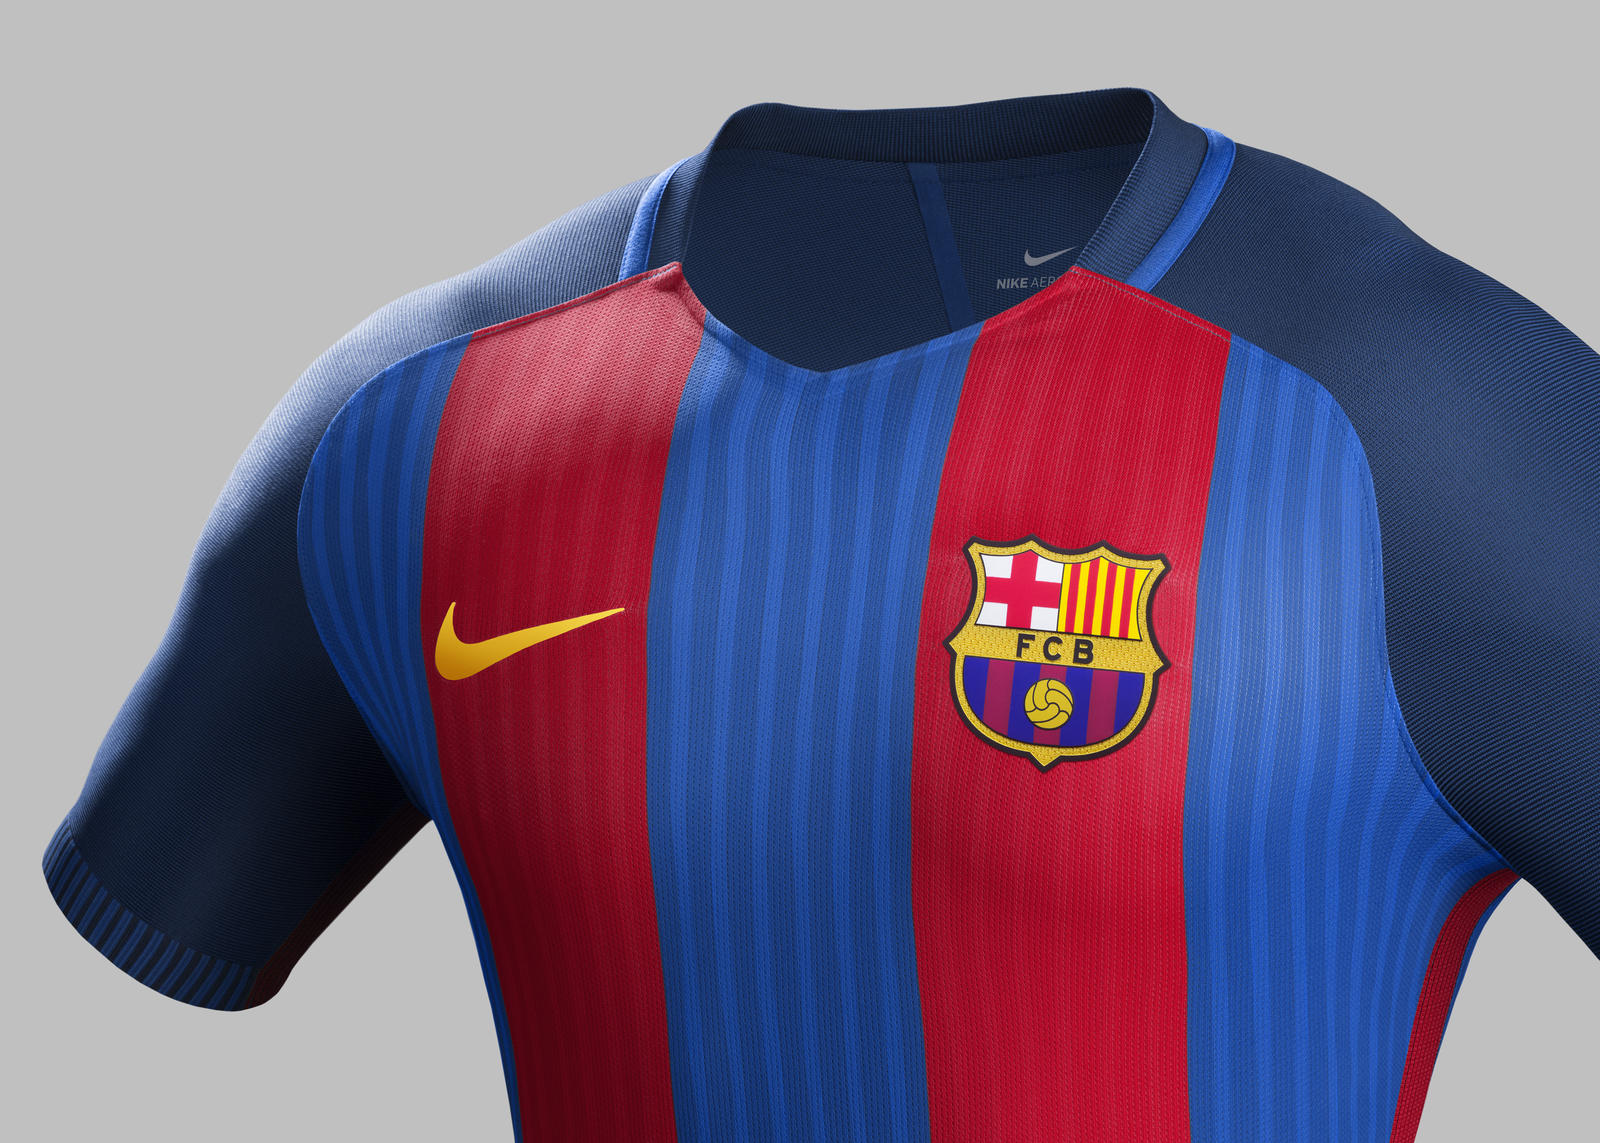 2f8d71e60b23 Su16 CK Comms H Front Match FCB R. FC Barcelona home kit 2016-2017.  Su16 CK Comms H Crest Match FCB R